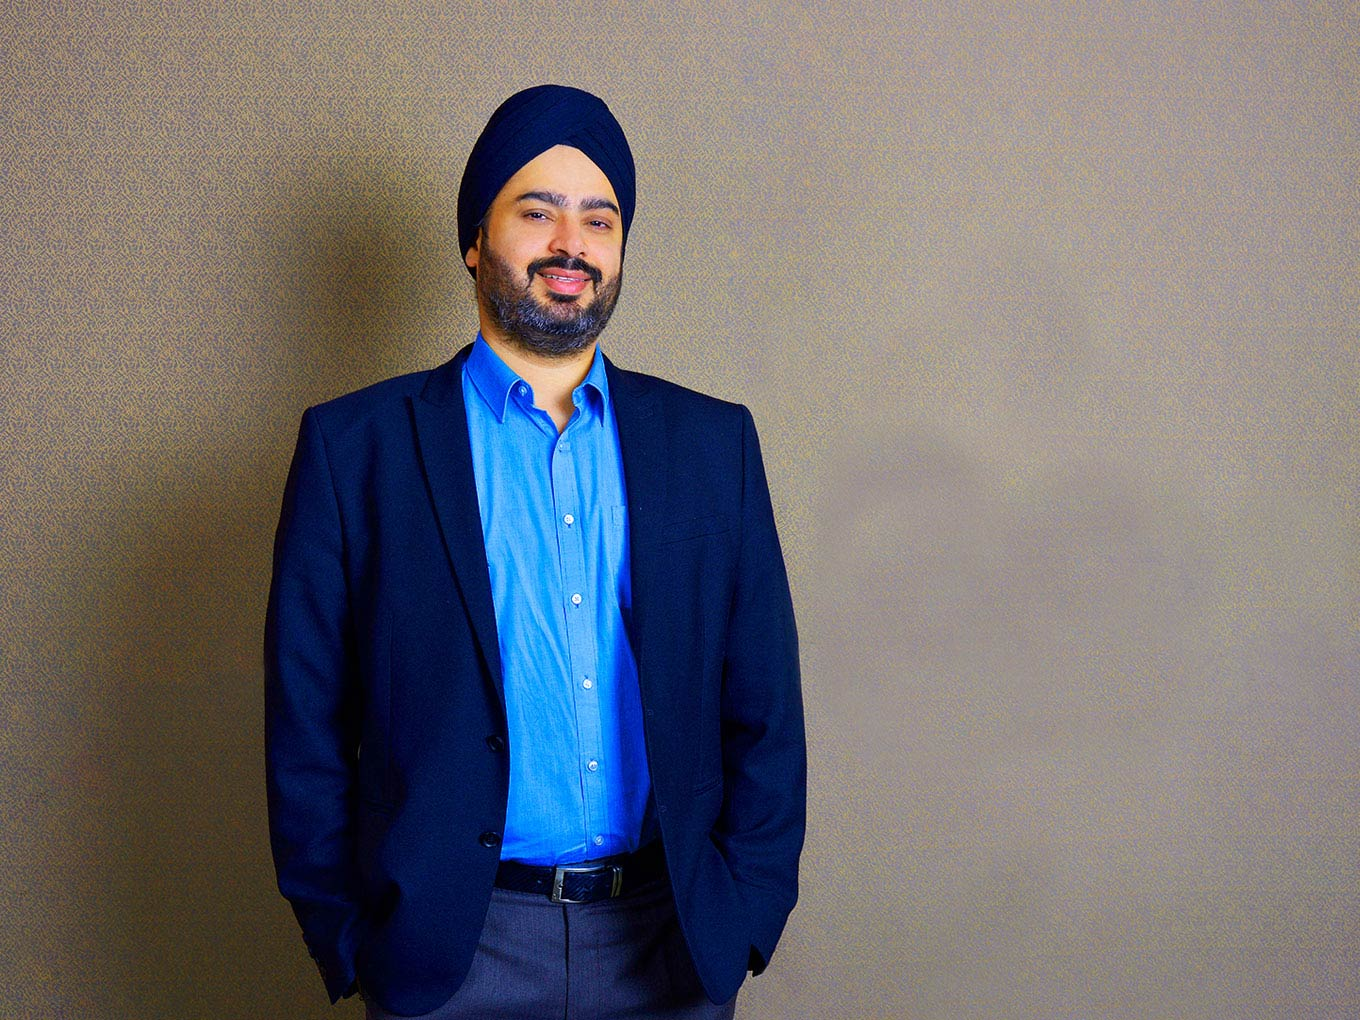 MobiKwik Founder and CEO, Bipin Preet Singh On His Plans To Get The Real India To Transact Online